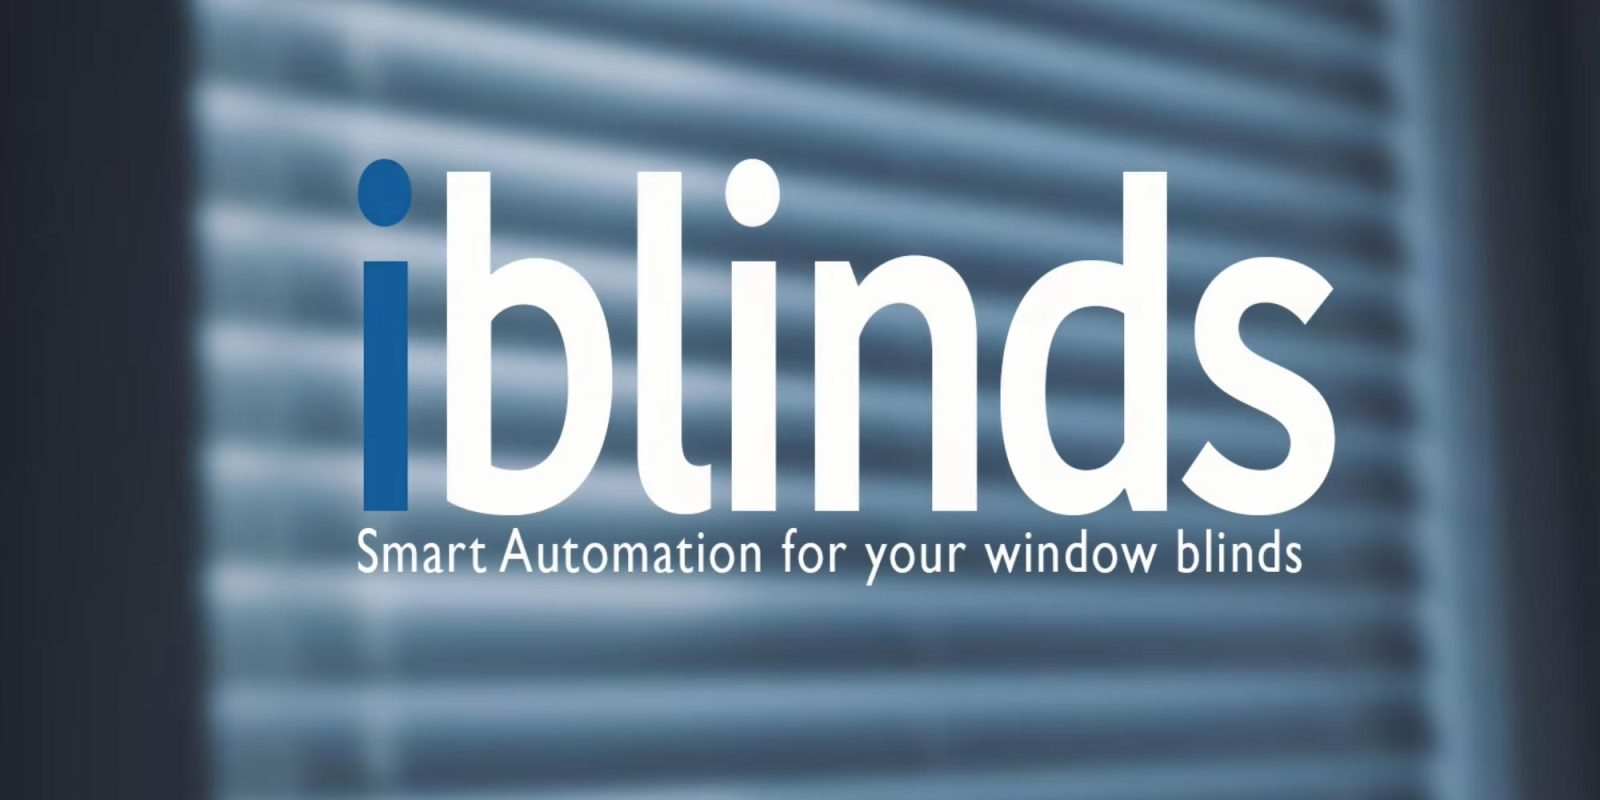 iBlinds helps you convert your existing blinds to smart blinds for just $75